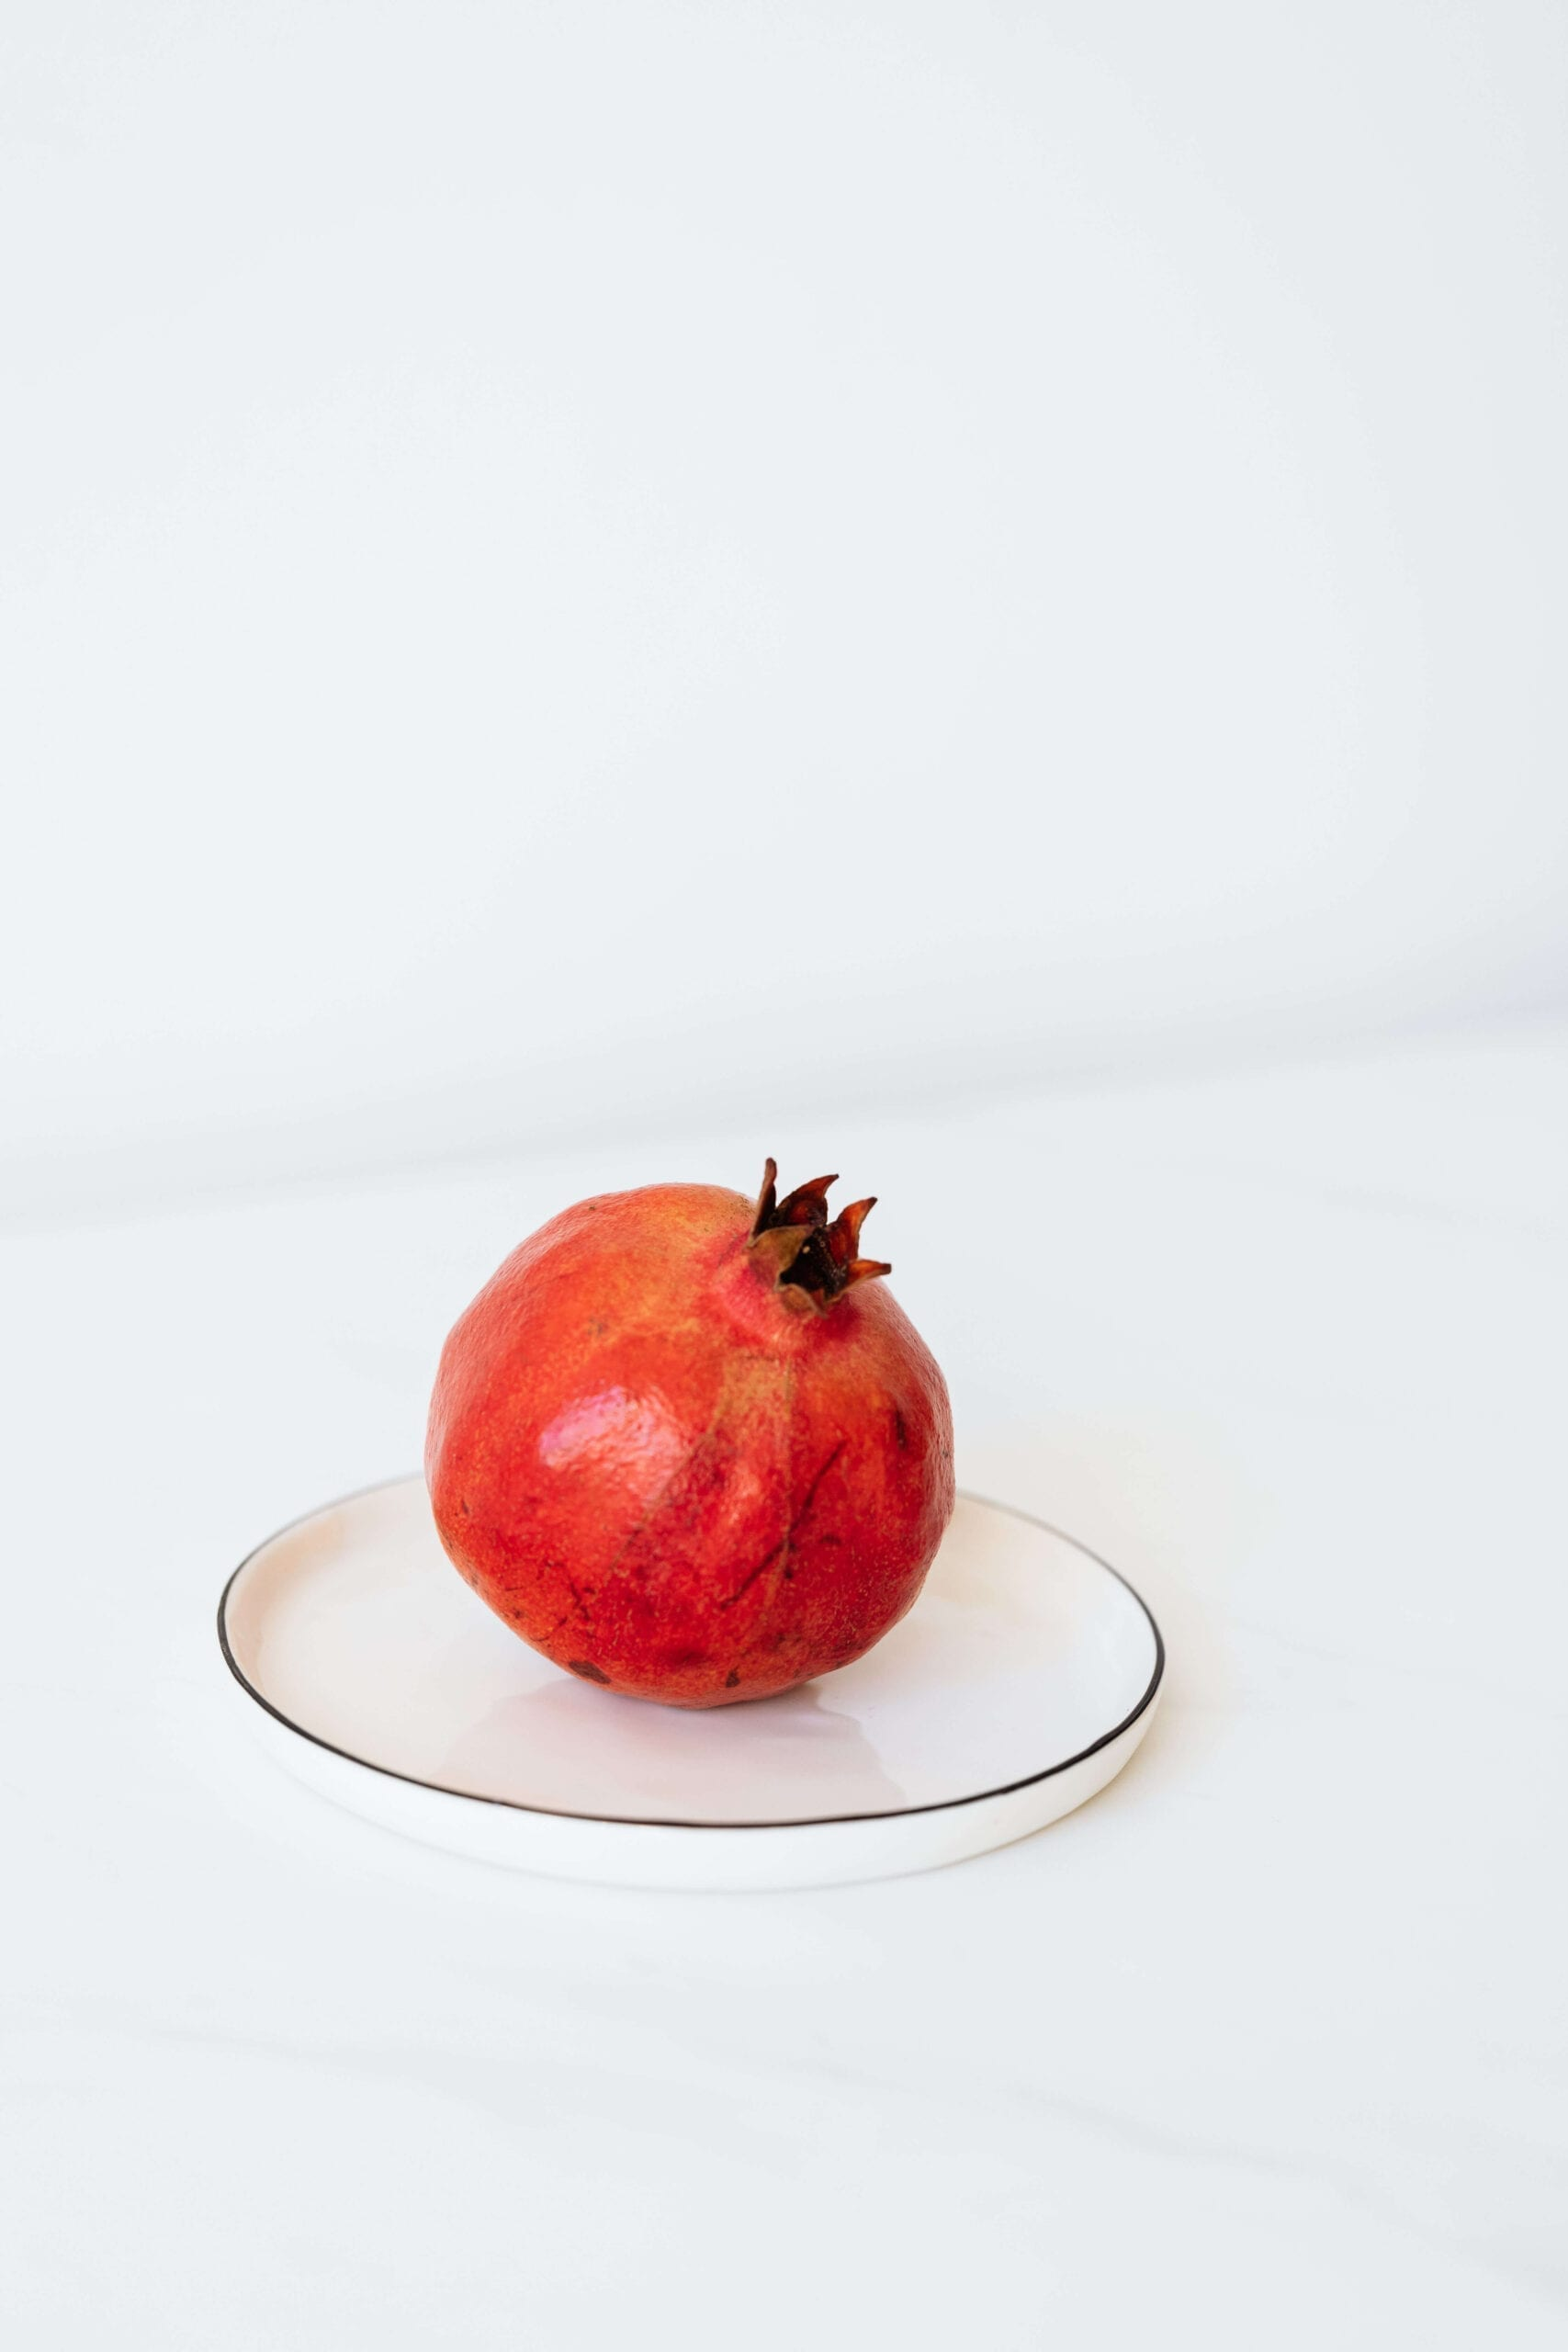 ripe-pomegranate-on-metal-plate-on-white-table-4230630